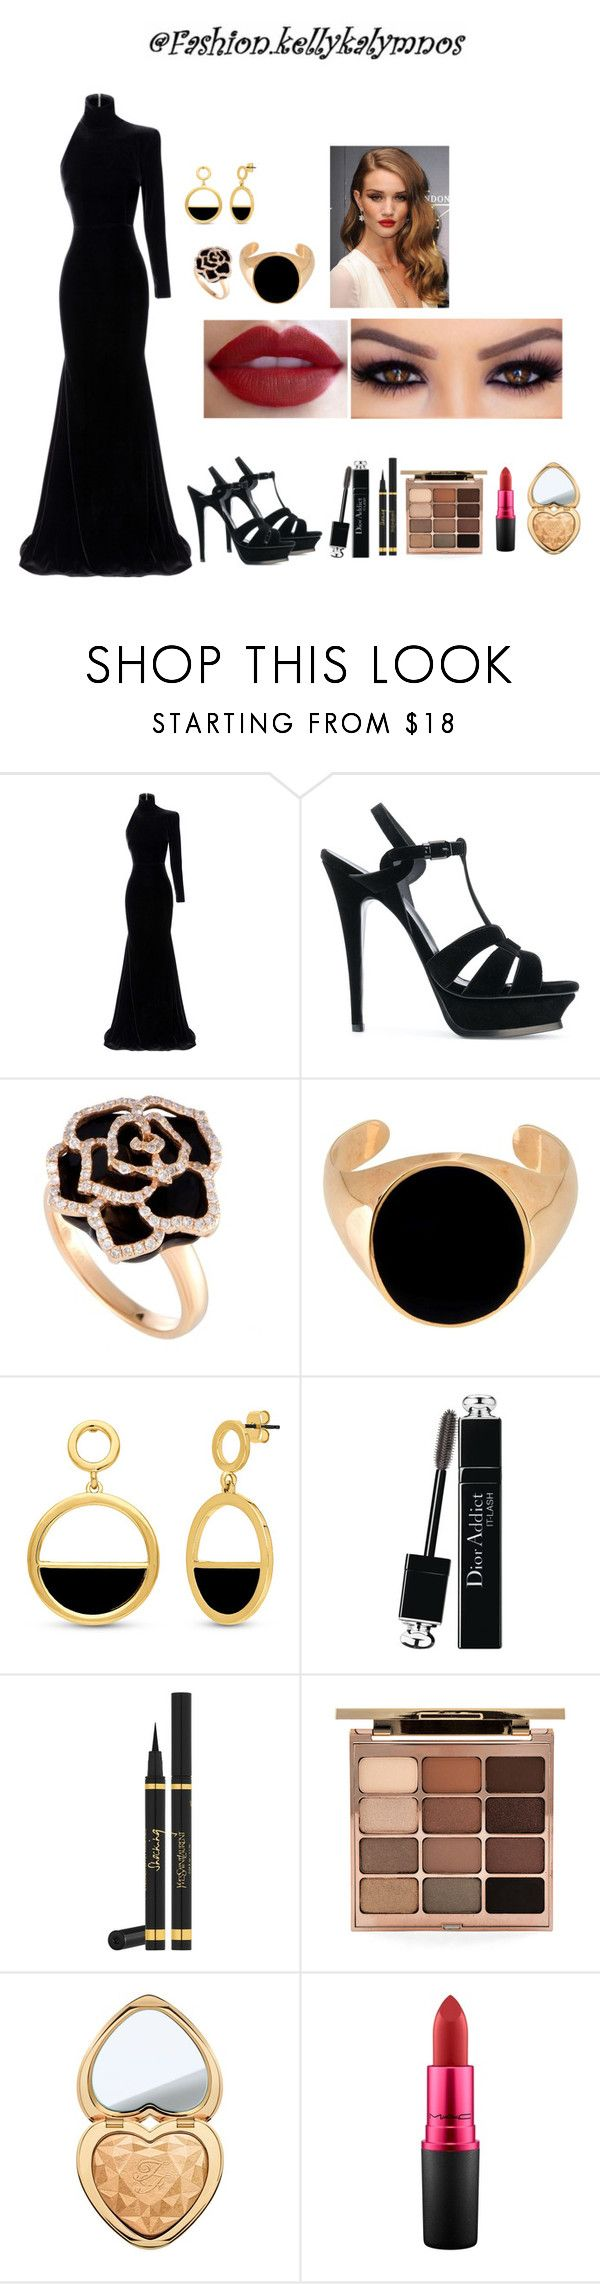 """Glam fashion with Velvet dress"" by kellykalymnoskd on Polyvore featuring Alex Perry, Yves Saint Laurent, Maison Margiela, BERRICLE, Christian Dior, Stila, Too Faced Cosmetics and MAC Cosmetics"